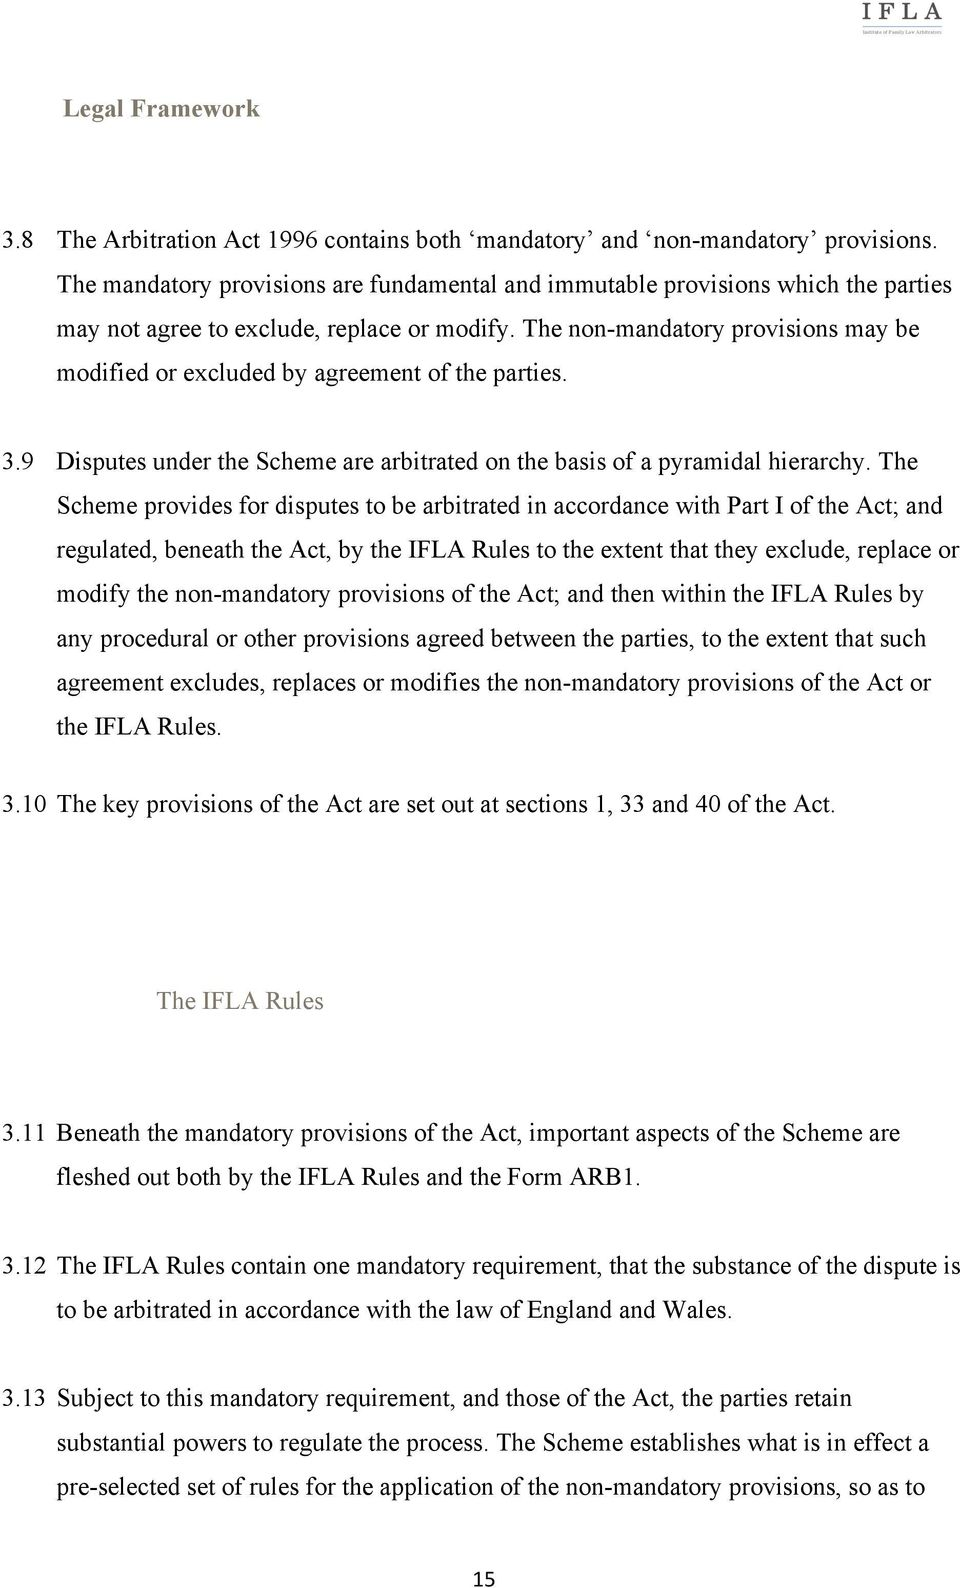 The non-mandatory provisions may be modified or excluded by agreement of the parties. 3.9 Disputes under the Scheme are arbitrated on the basis of a pyramidal hierarchy.